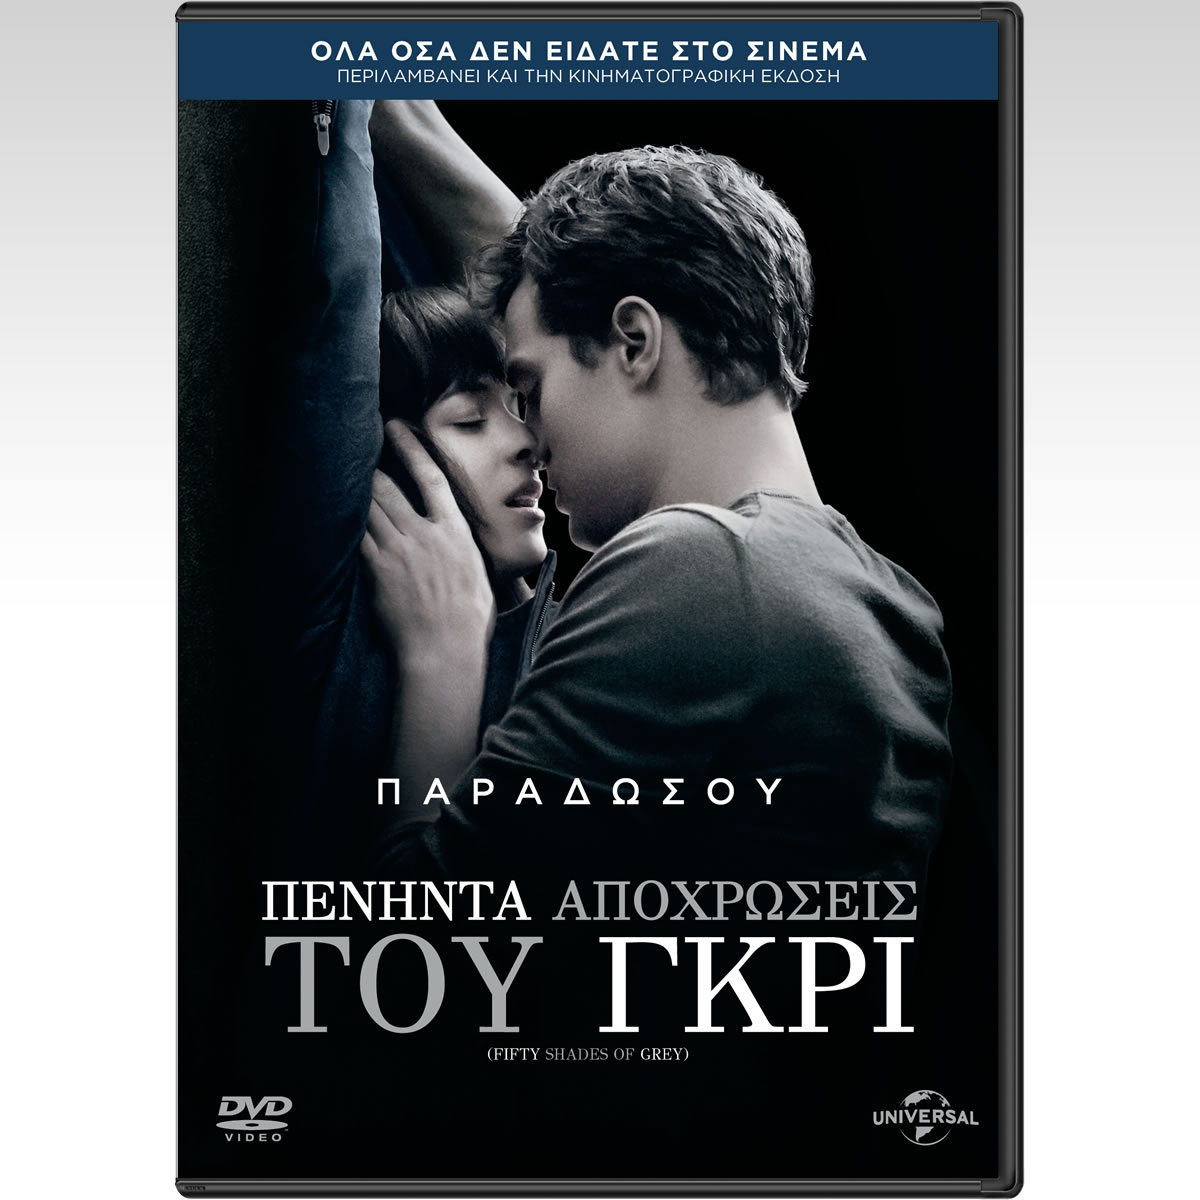 FIFTY SHADES OF GREY - ������� ���������� ��� ���� (DVD)